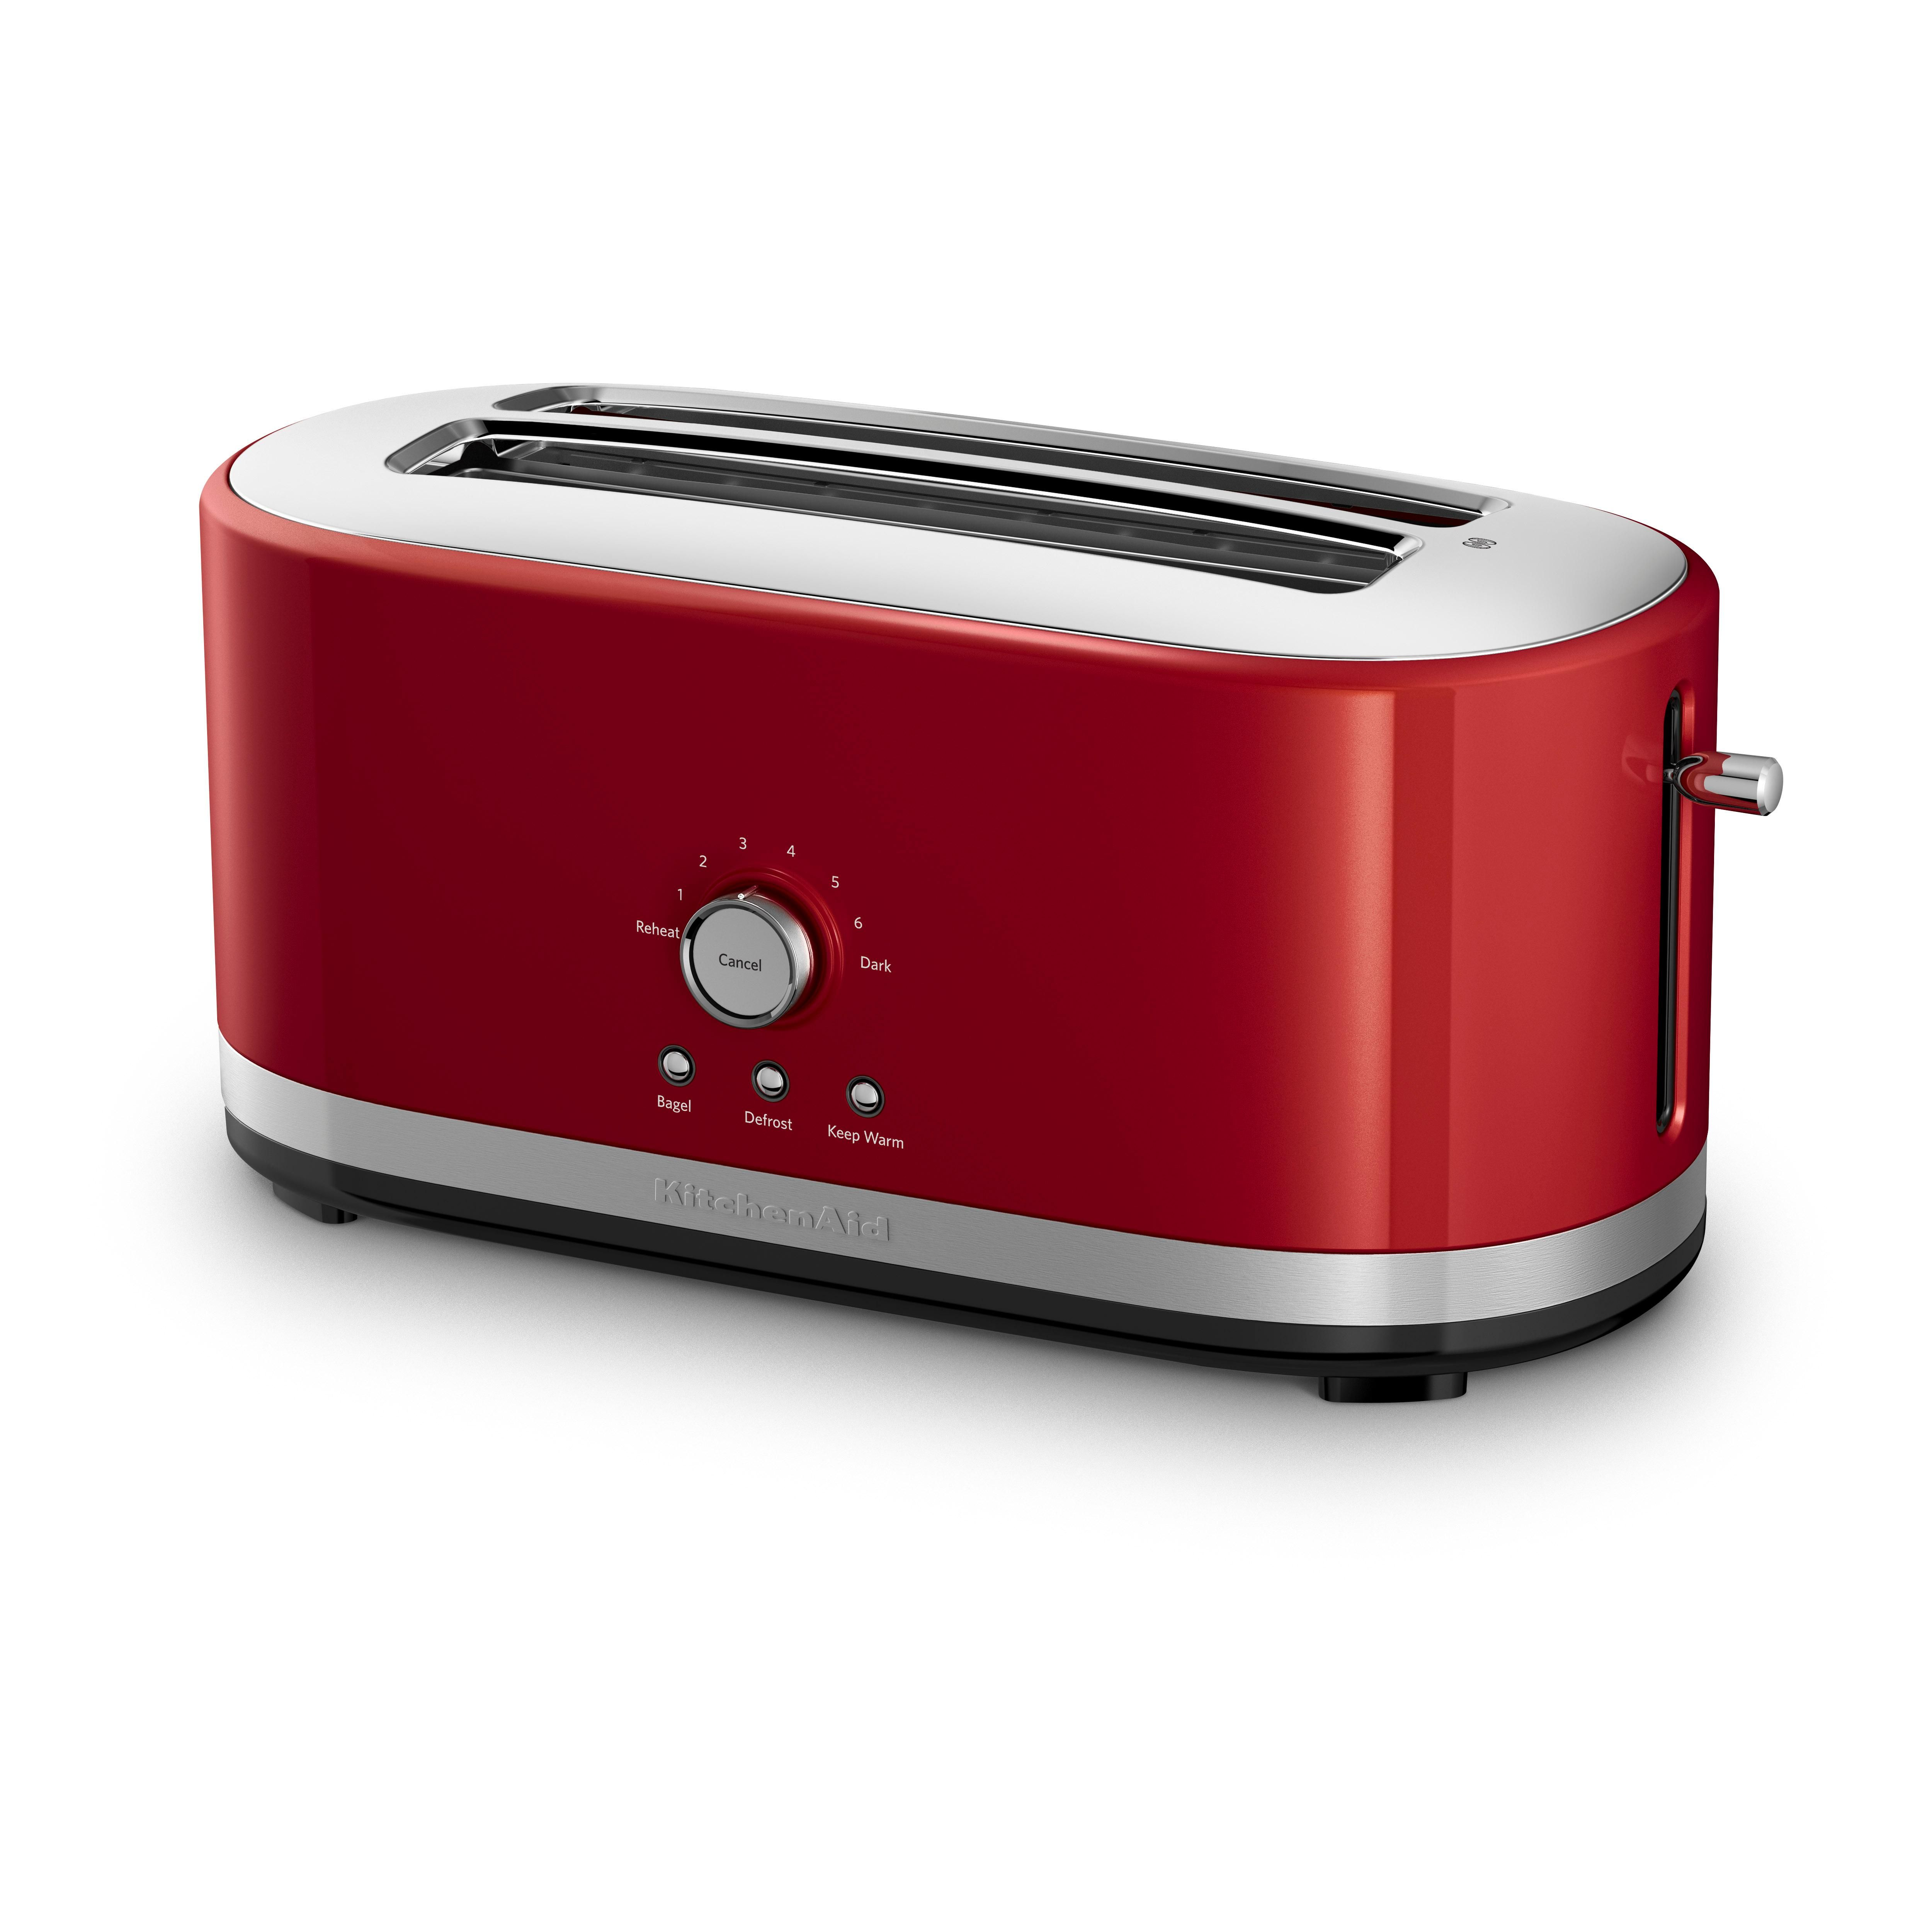 shipping slice toaster eto oven garden elite free smart overstock product home today